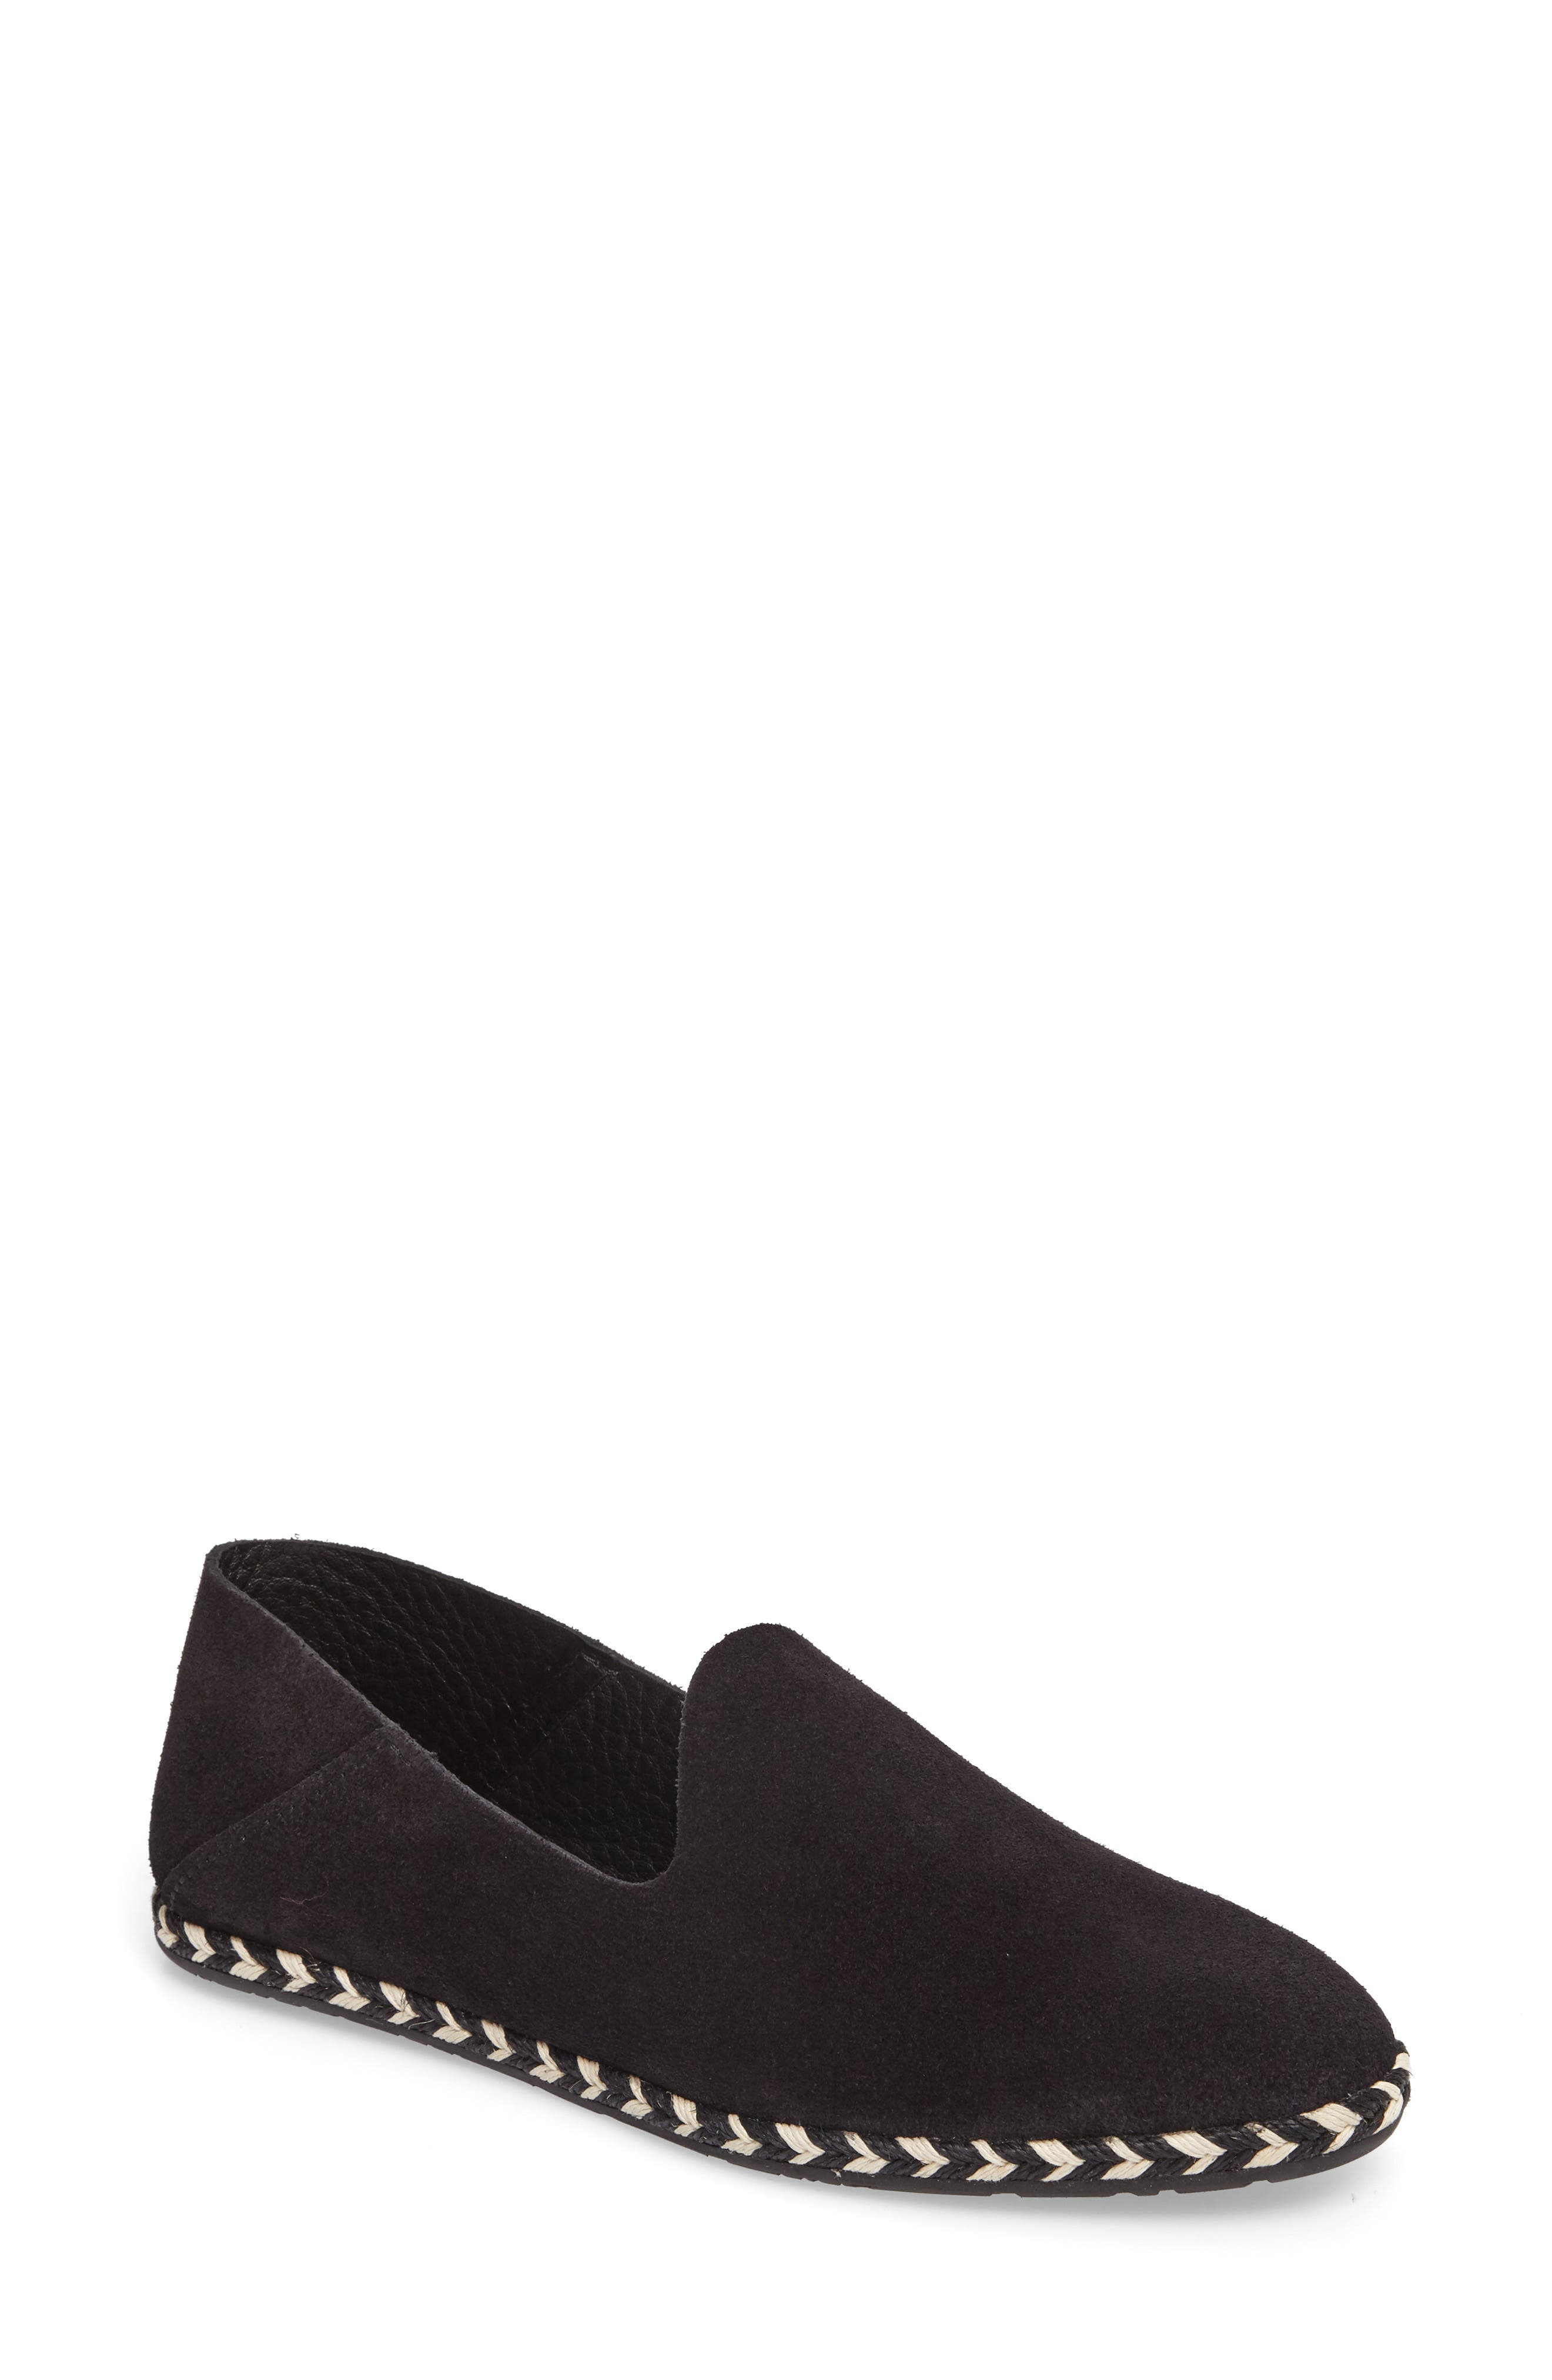 Yuli Convertible Woven Loafer,                         Main,                         color, Black